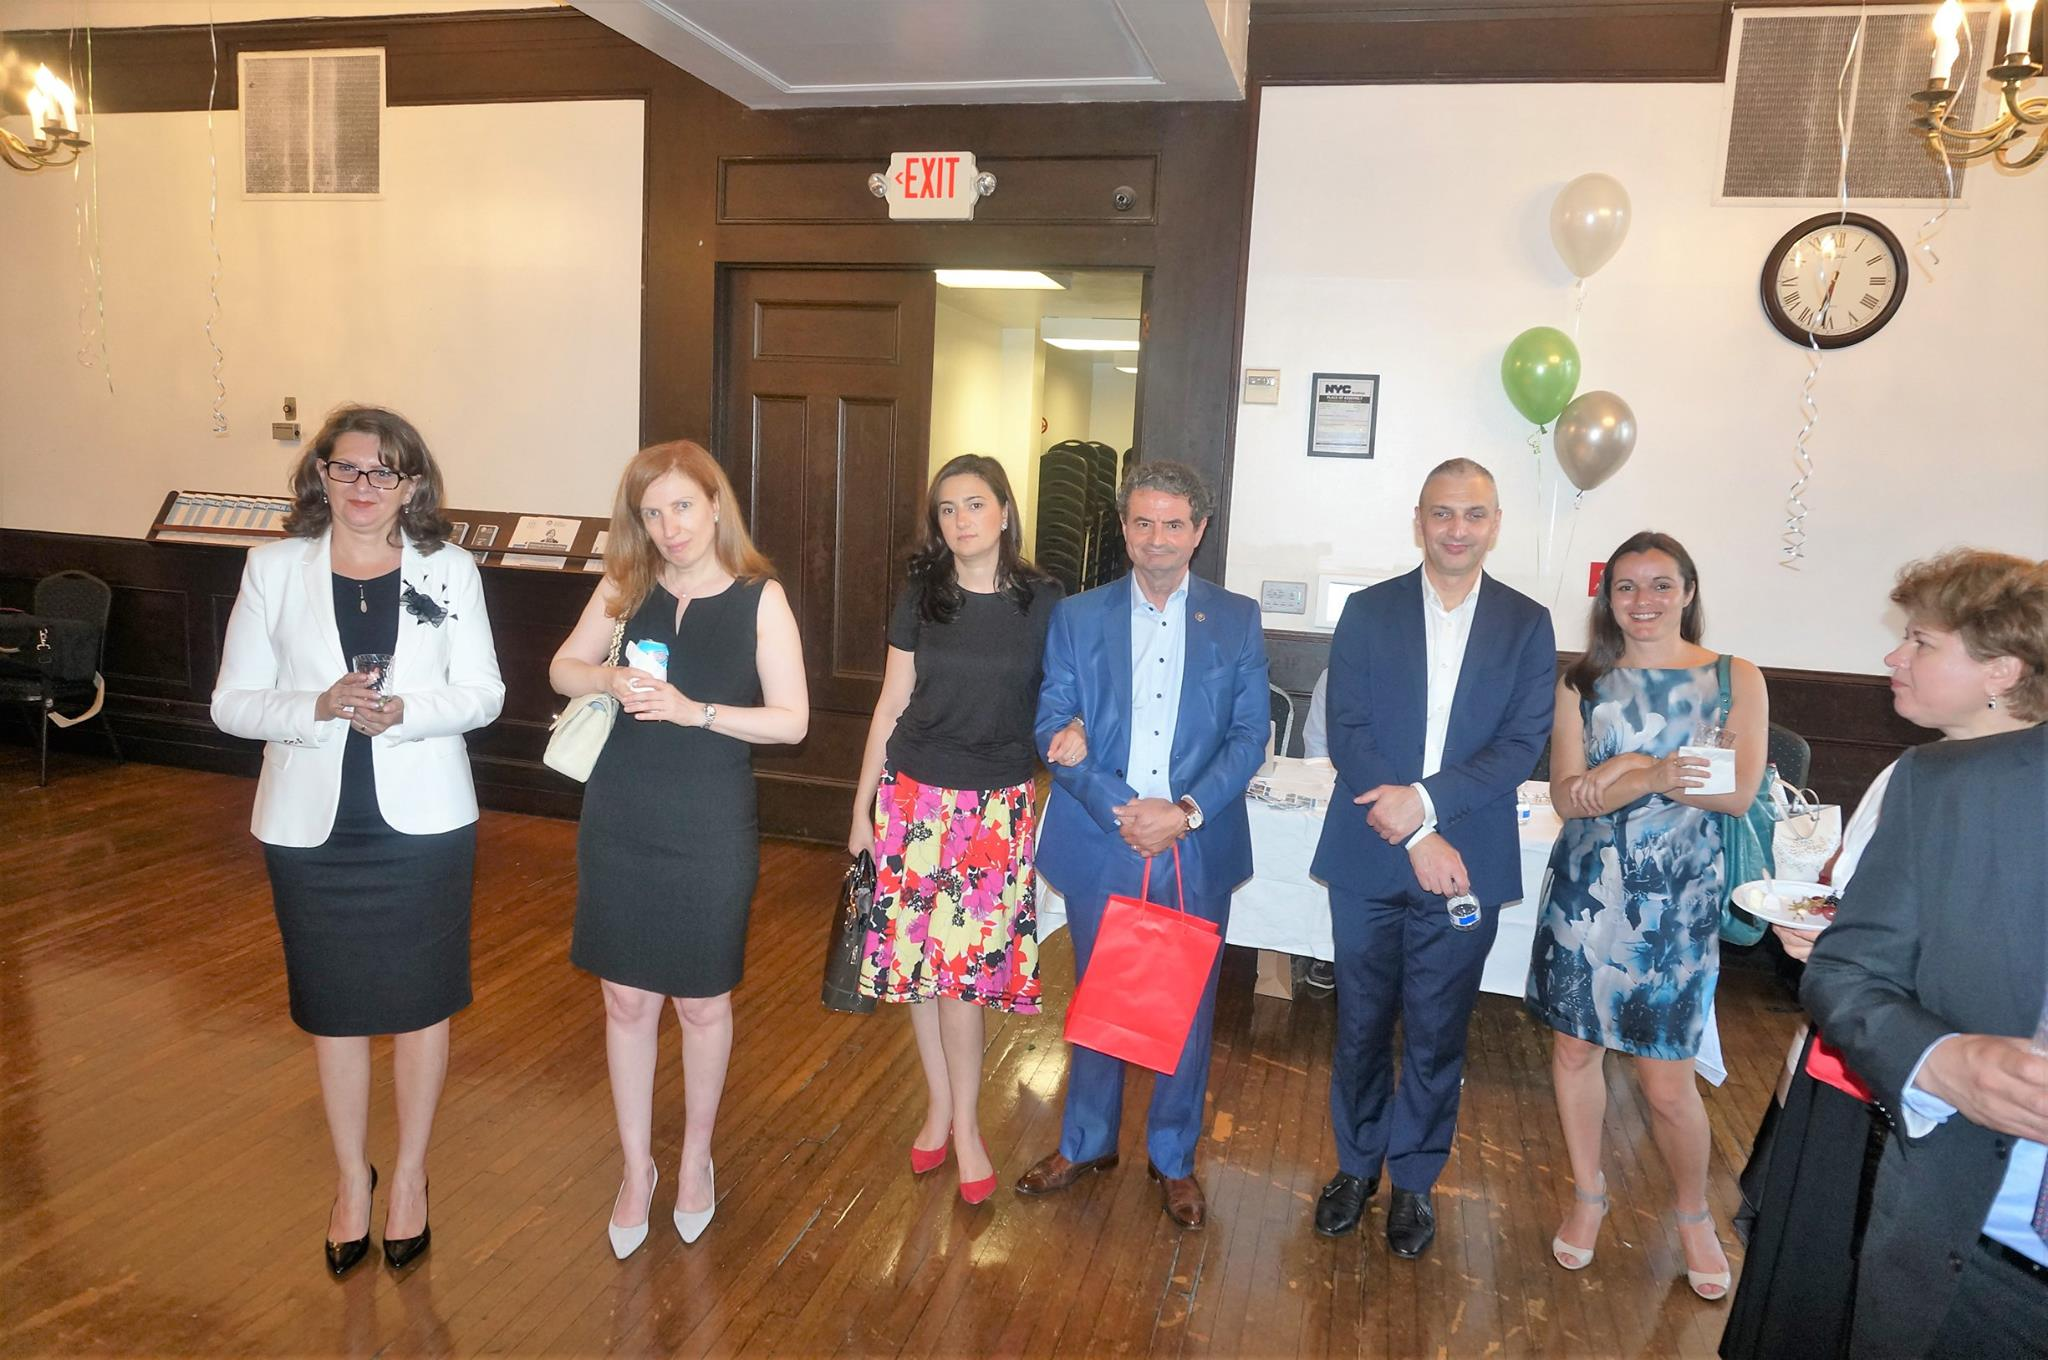 Friends of Ana Lita and board members of Romanian American Business Council